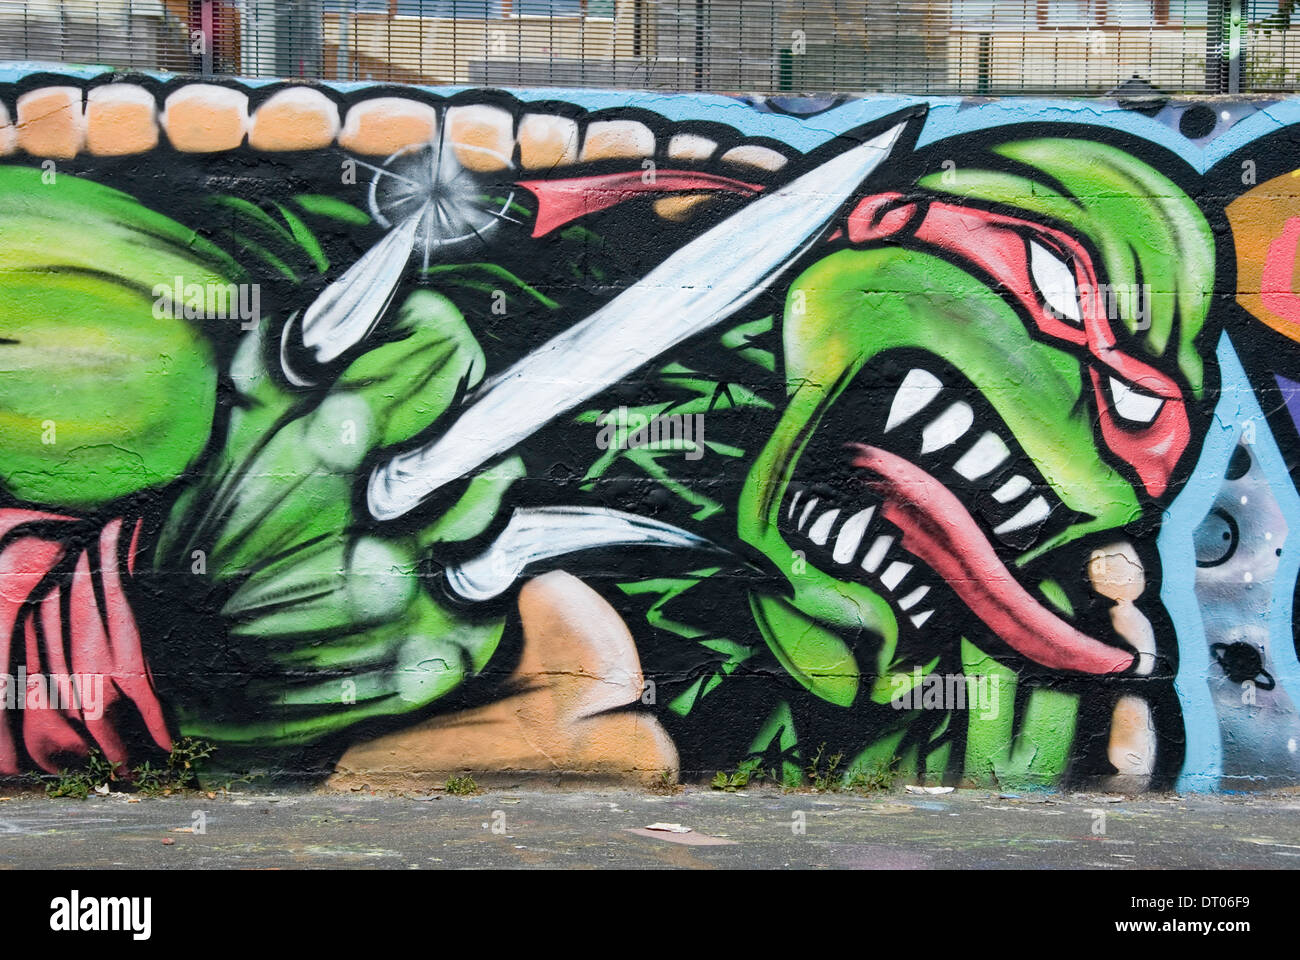 Mutant ninja turtle graffiti words